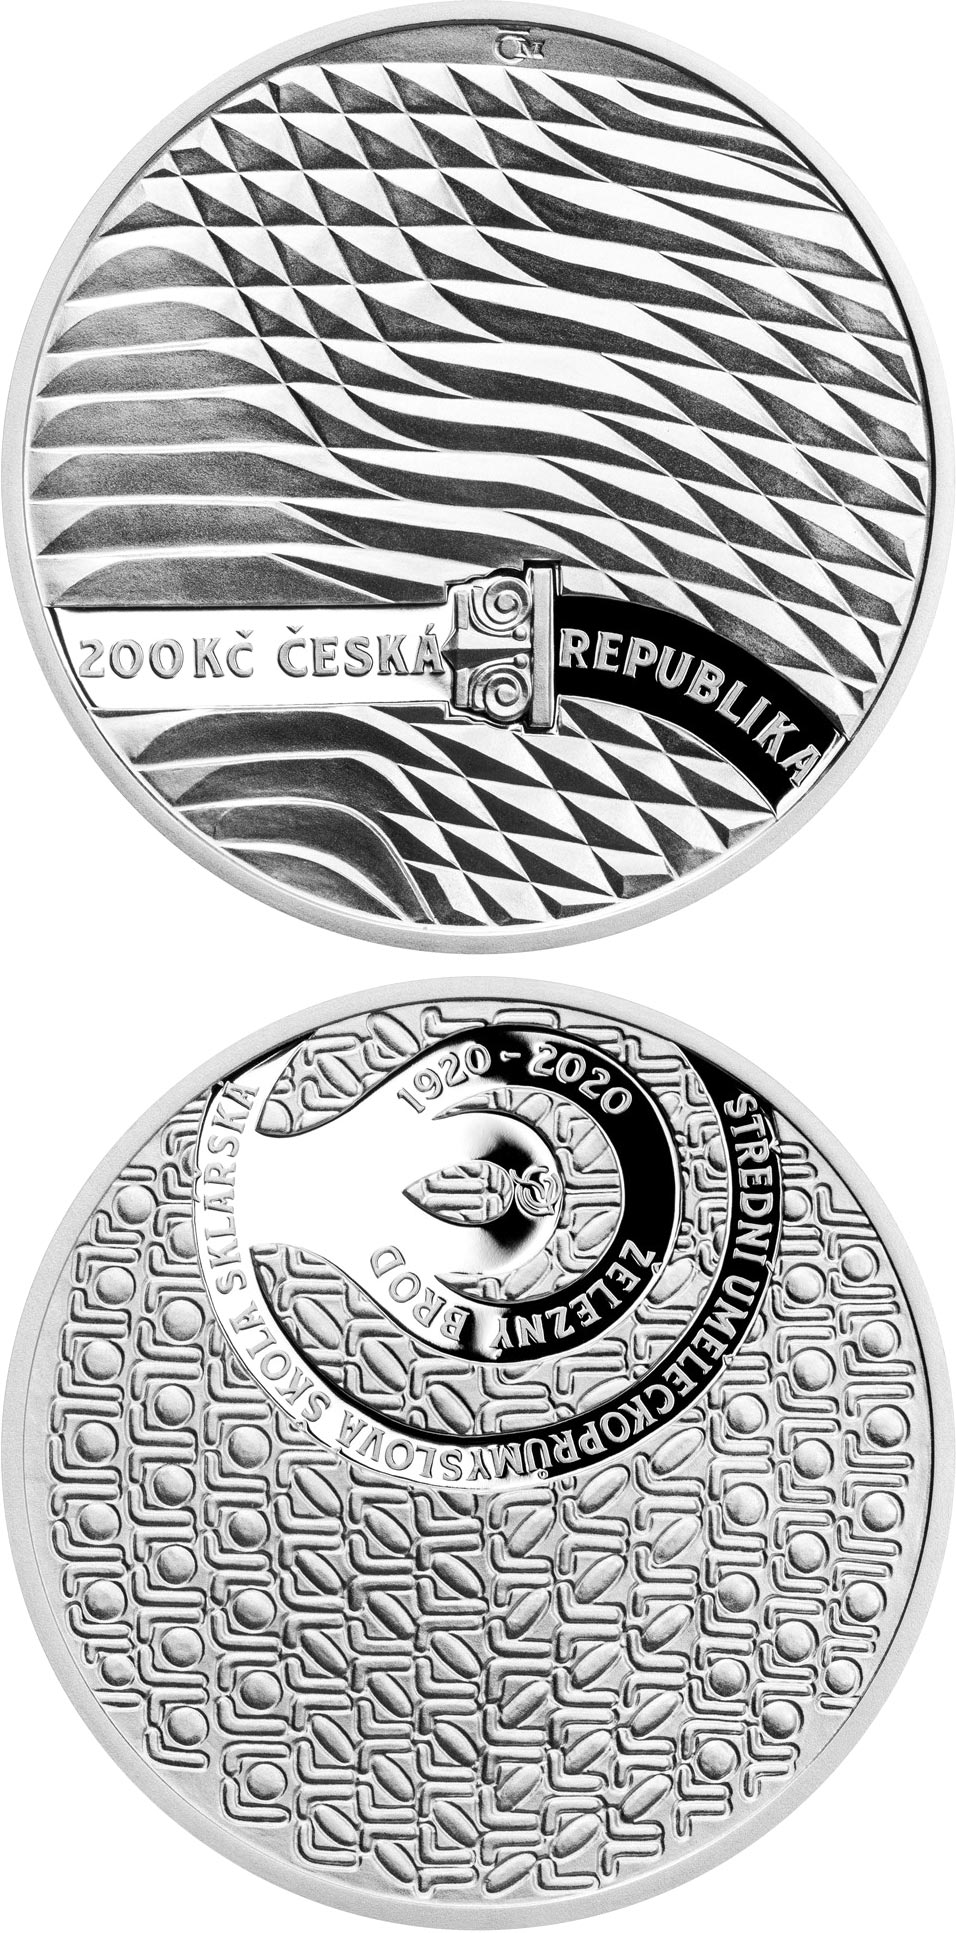 Image of 200 koruna coin - Foundation of the High School of Applied Arts for Glassmaking in Železný Brod | Czech Republic 2020.  The Silver coin is of Proof, BU quality.